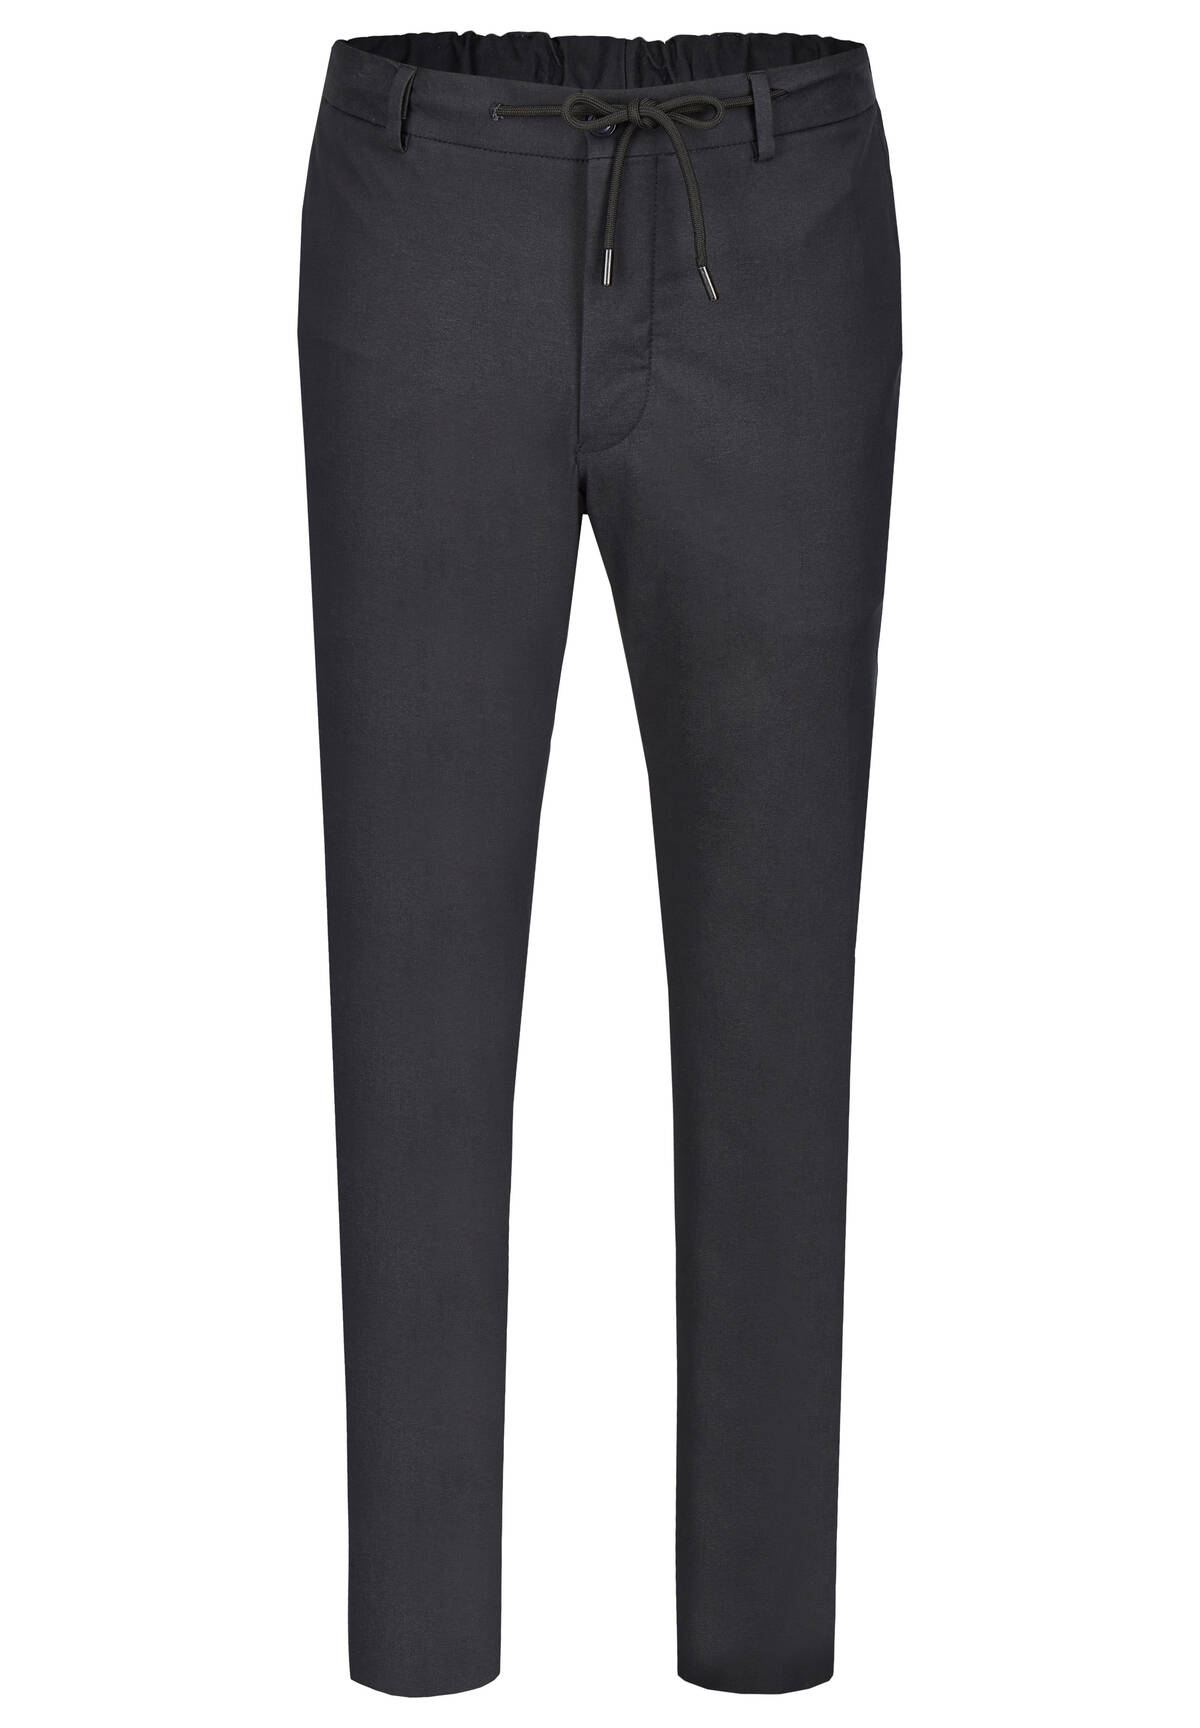 DH-XTECH Allrounder Chino / TROUSERS MODERNXTECH